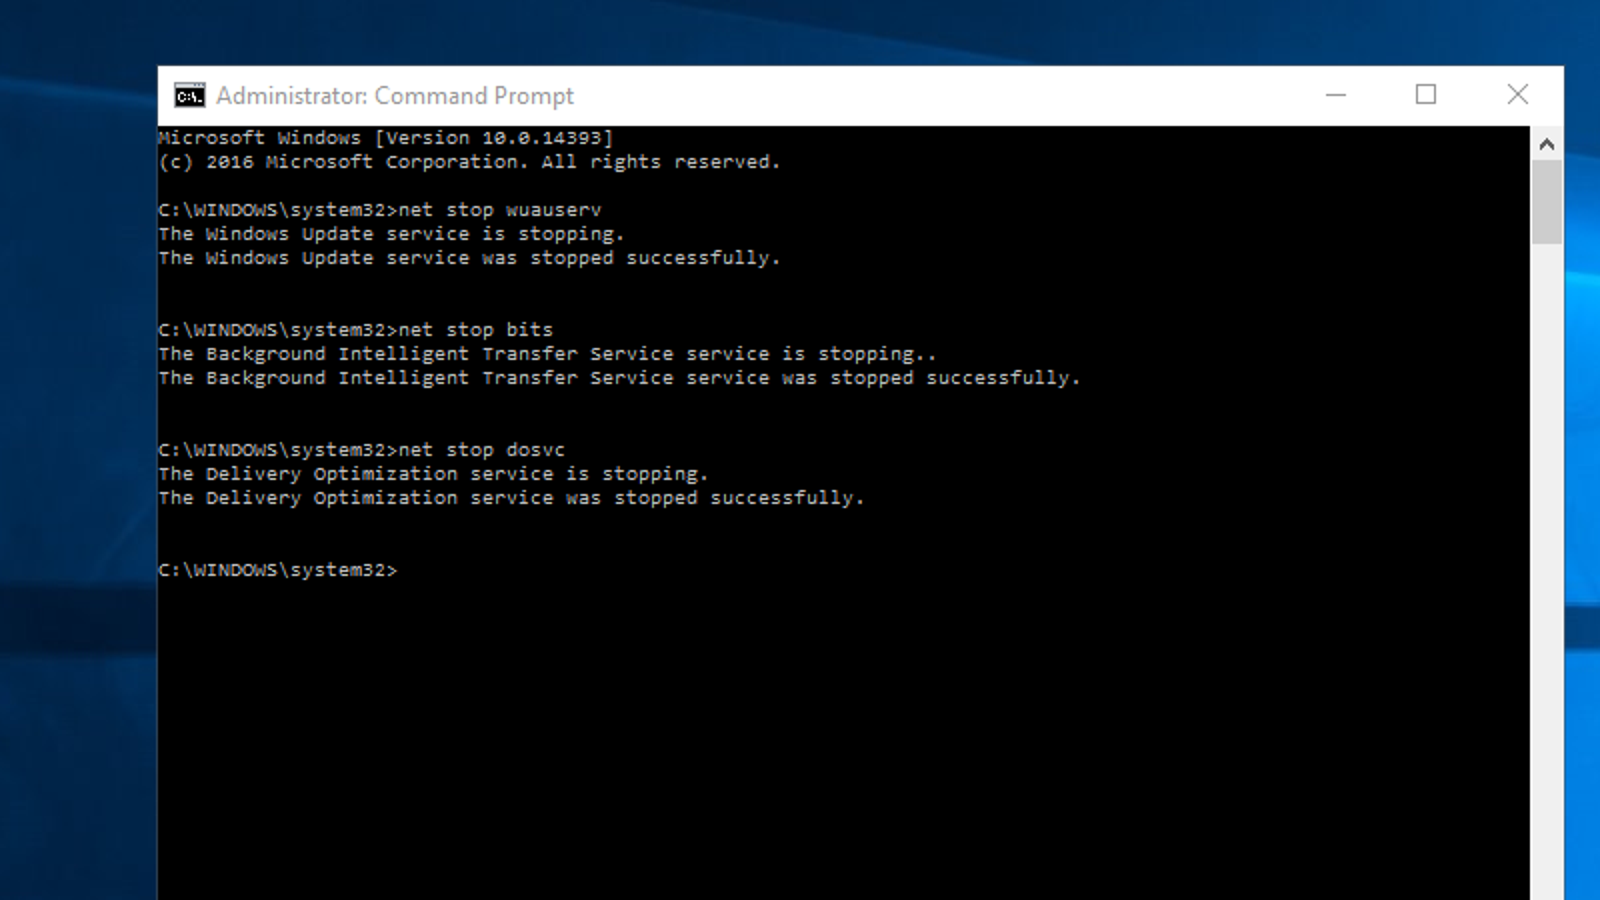 Deleting Windows 7 updates through the command line